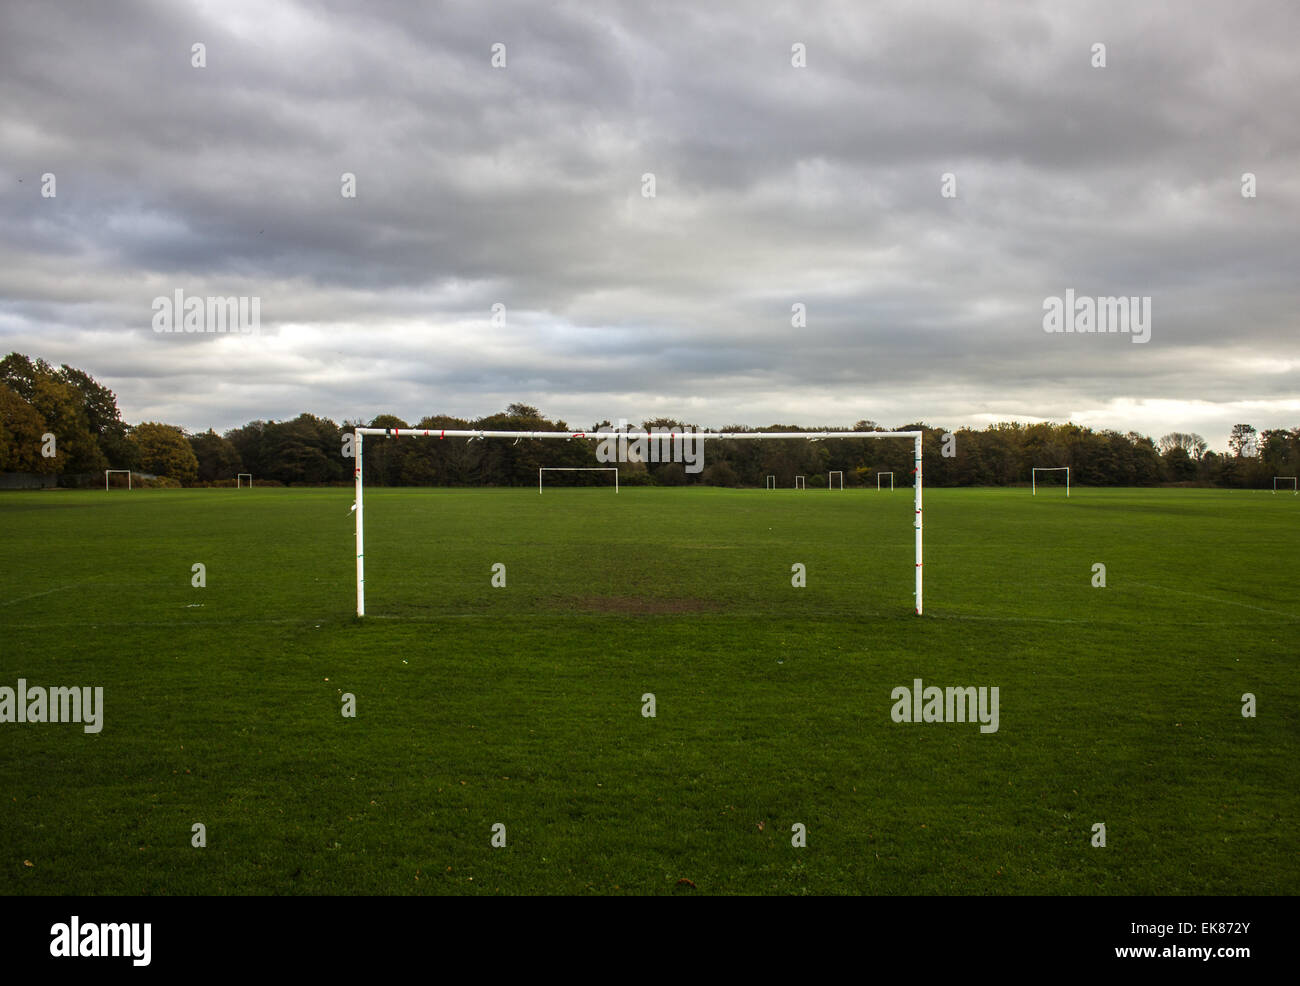 Grass Roots Football Stock Photo